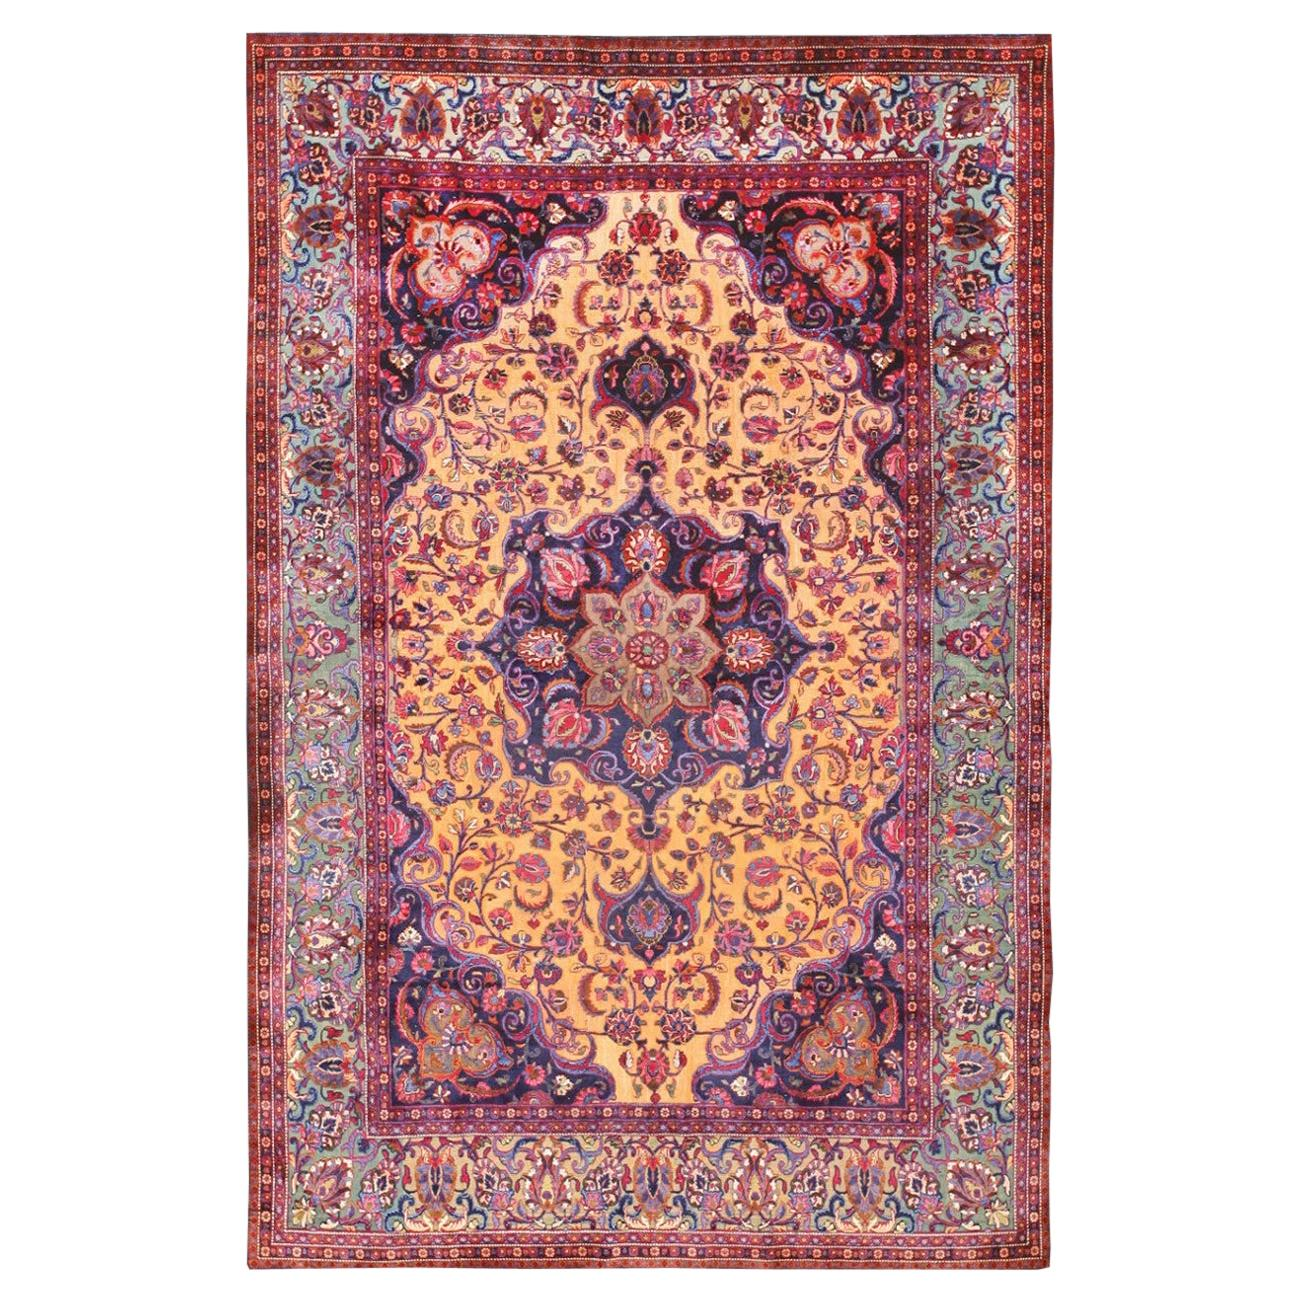 Antique Persian Silk Kashan Rug. Size: 4 ft 6 in x 6 ft 8 in (1.37 m x 2.03 m)